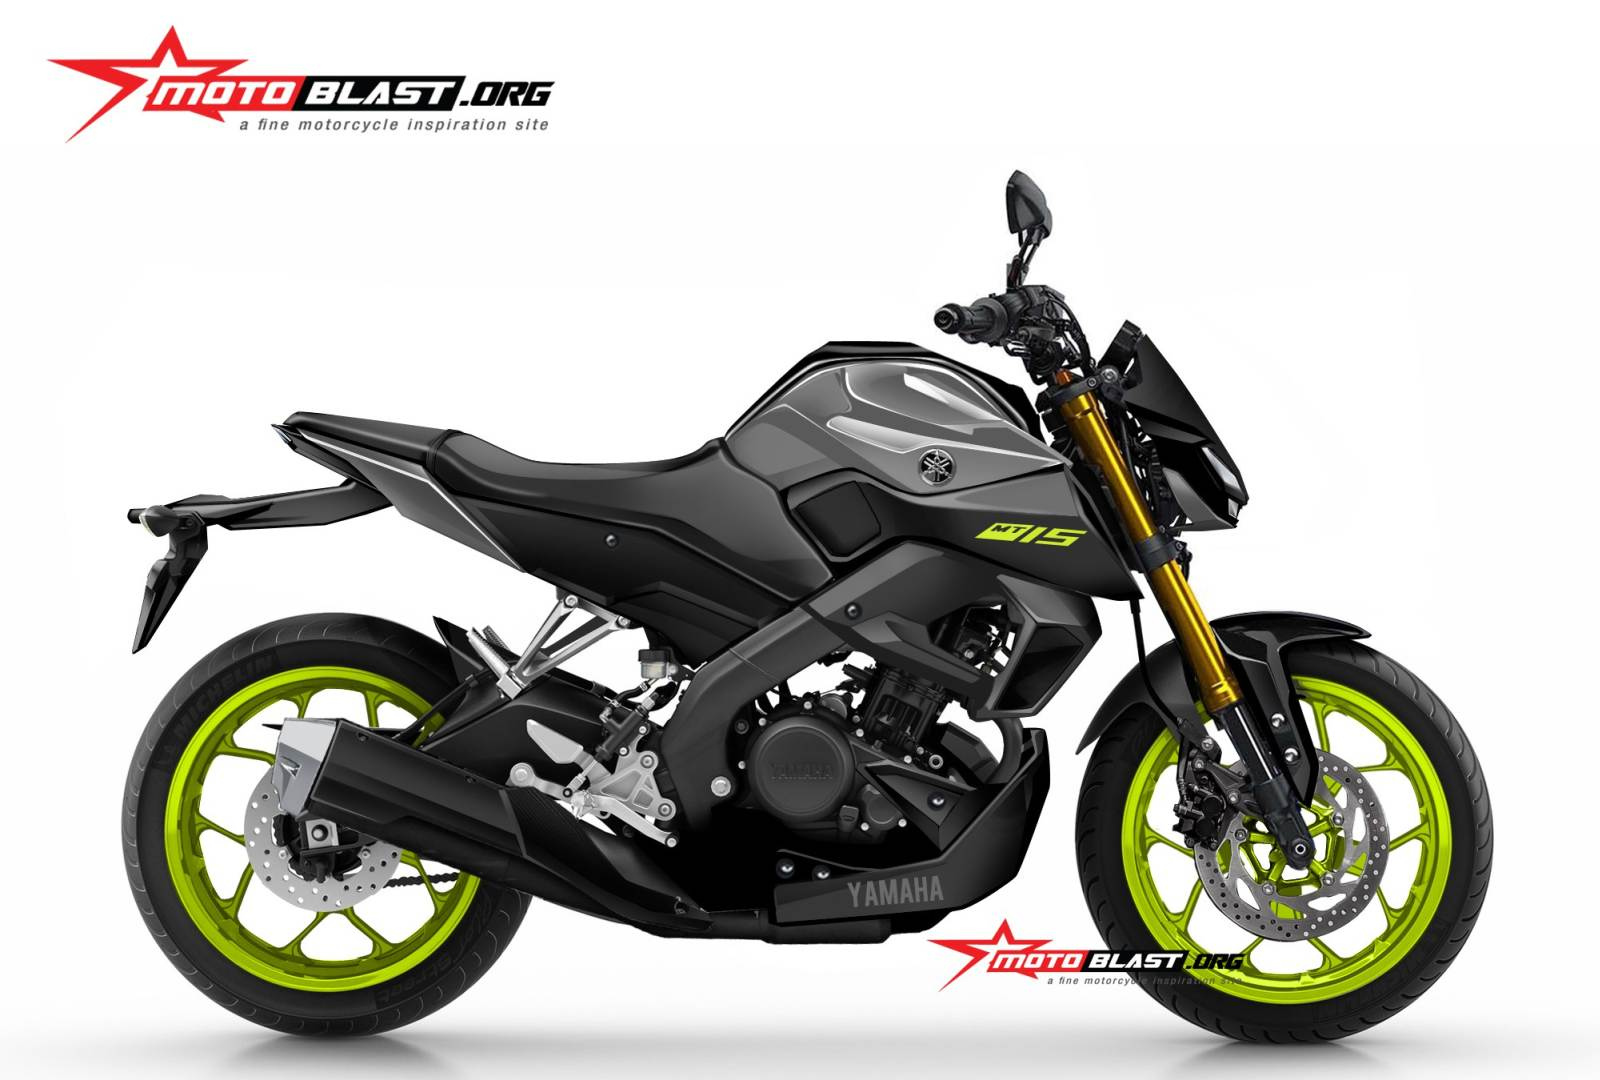 2019 Yamaha Xabre Mt 15 Render Is Pretty Close To The Real